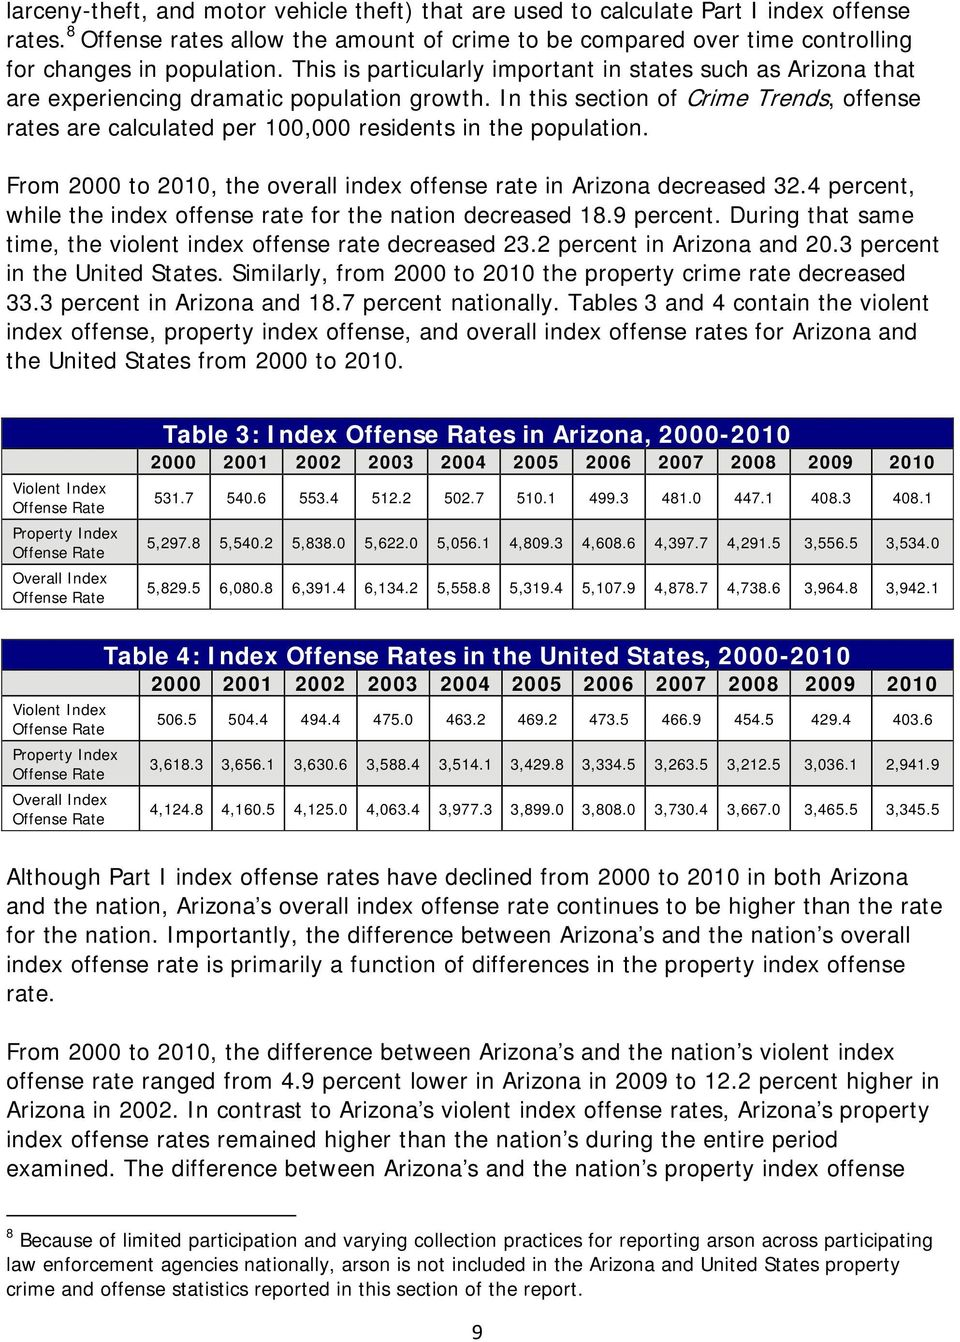 In this section of Crime Trends, offense rates are calculated per 100,000 residents in the population. From 2000 to 2010, the overall index offense rate in Arizona decreased 32.